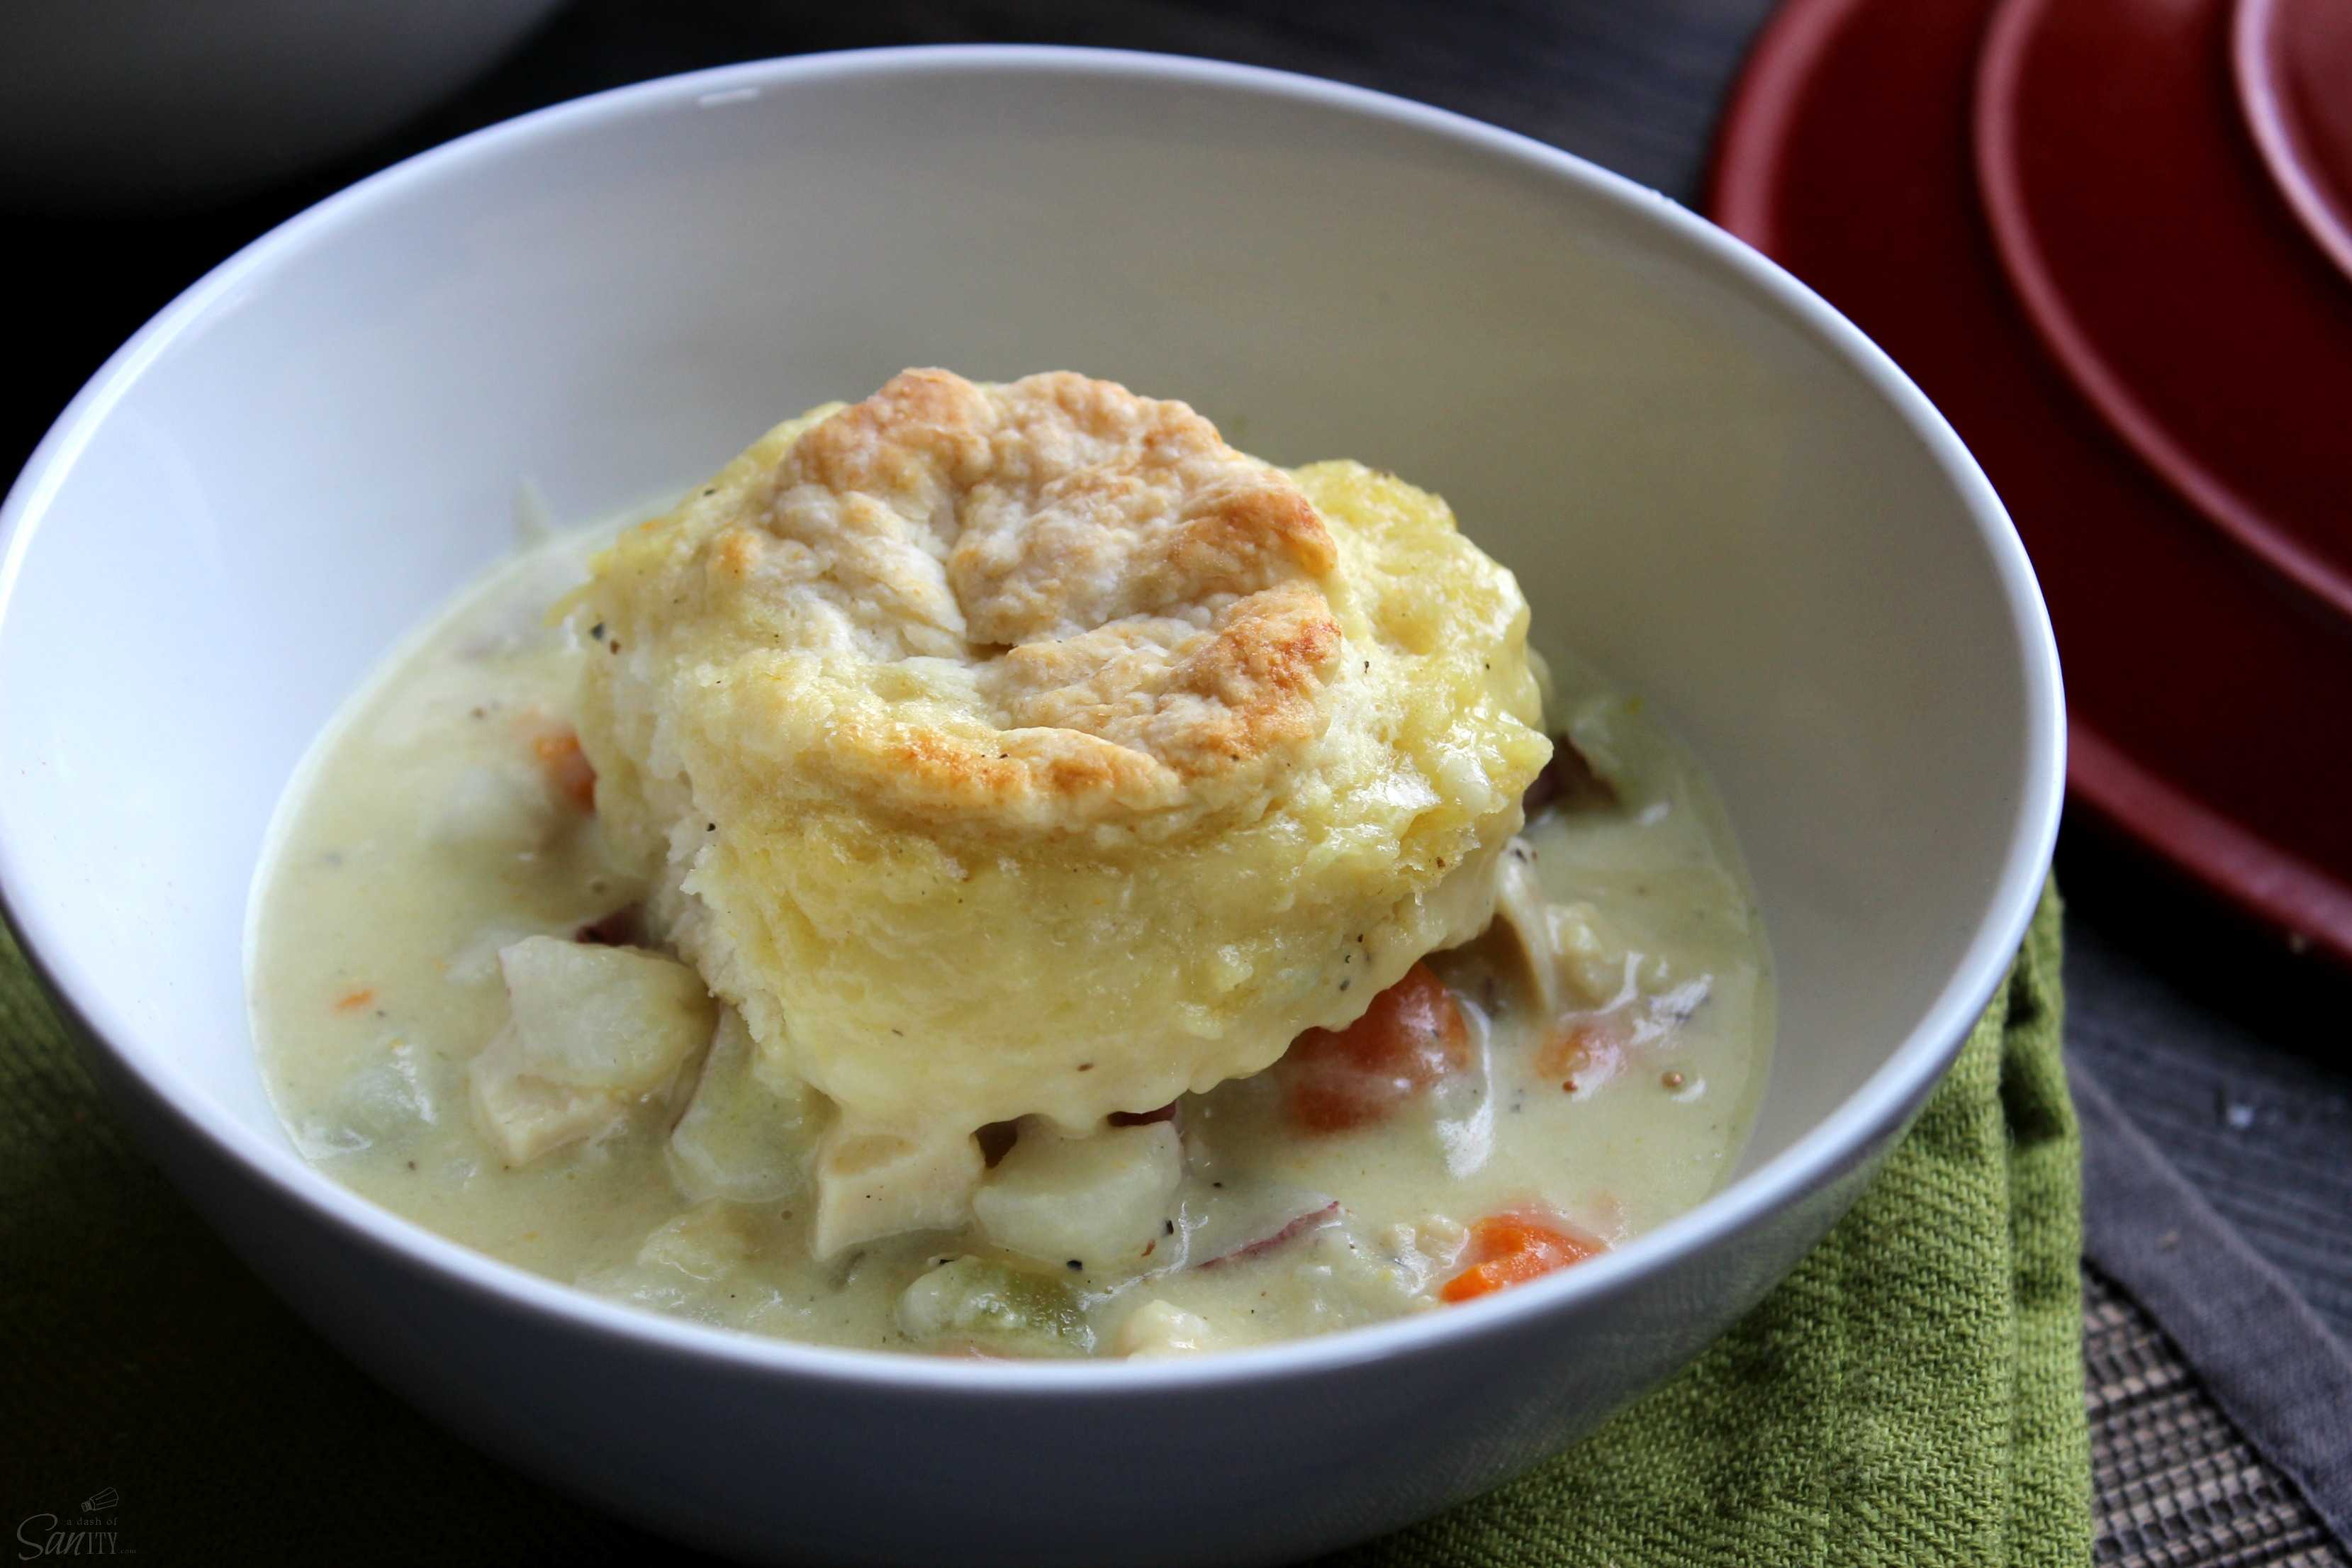 This One Pot Chicken & Biscuits is a simple and delicious recipe with biscuits made from scratch. A fantastic classic comfort food brought to you in bowl.